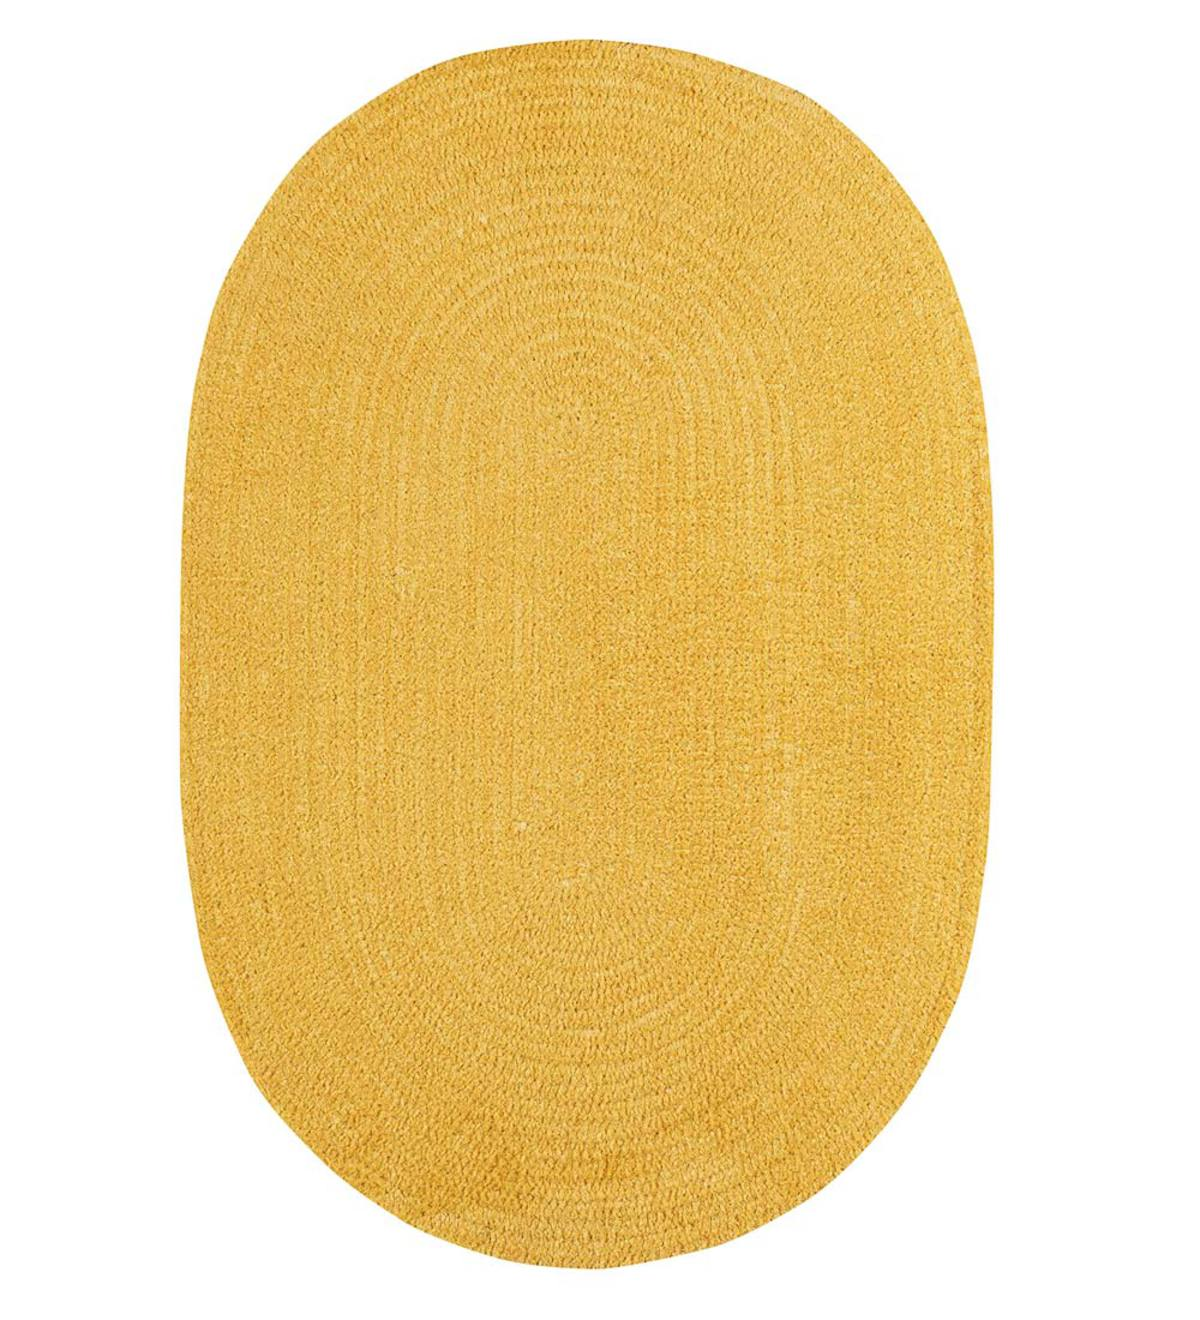 Chenille Oval Braided Area Rug, 5' x 8' - Citron